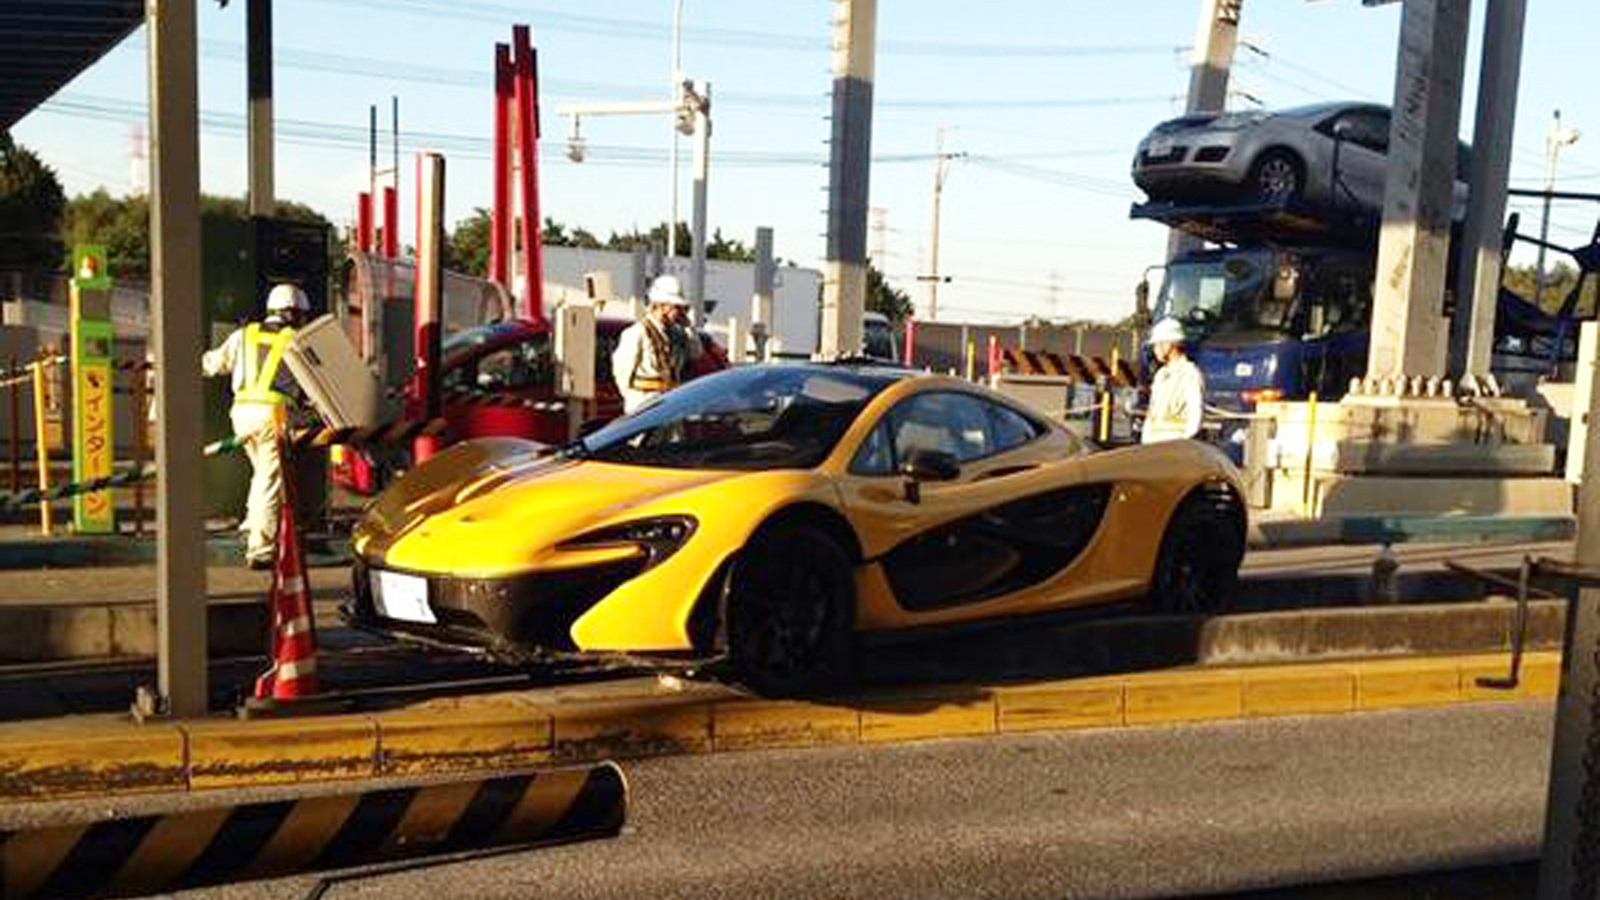 McLaren P1 that mounted a curb in Japan (Image via Japanizer)